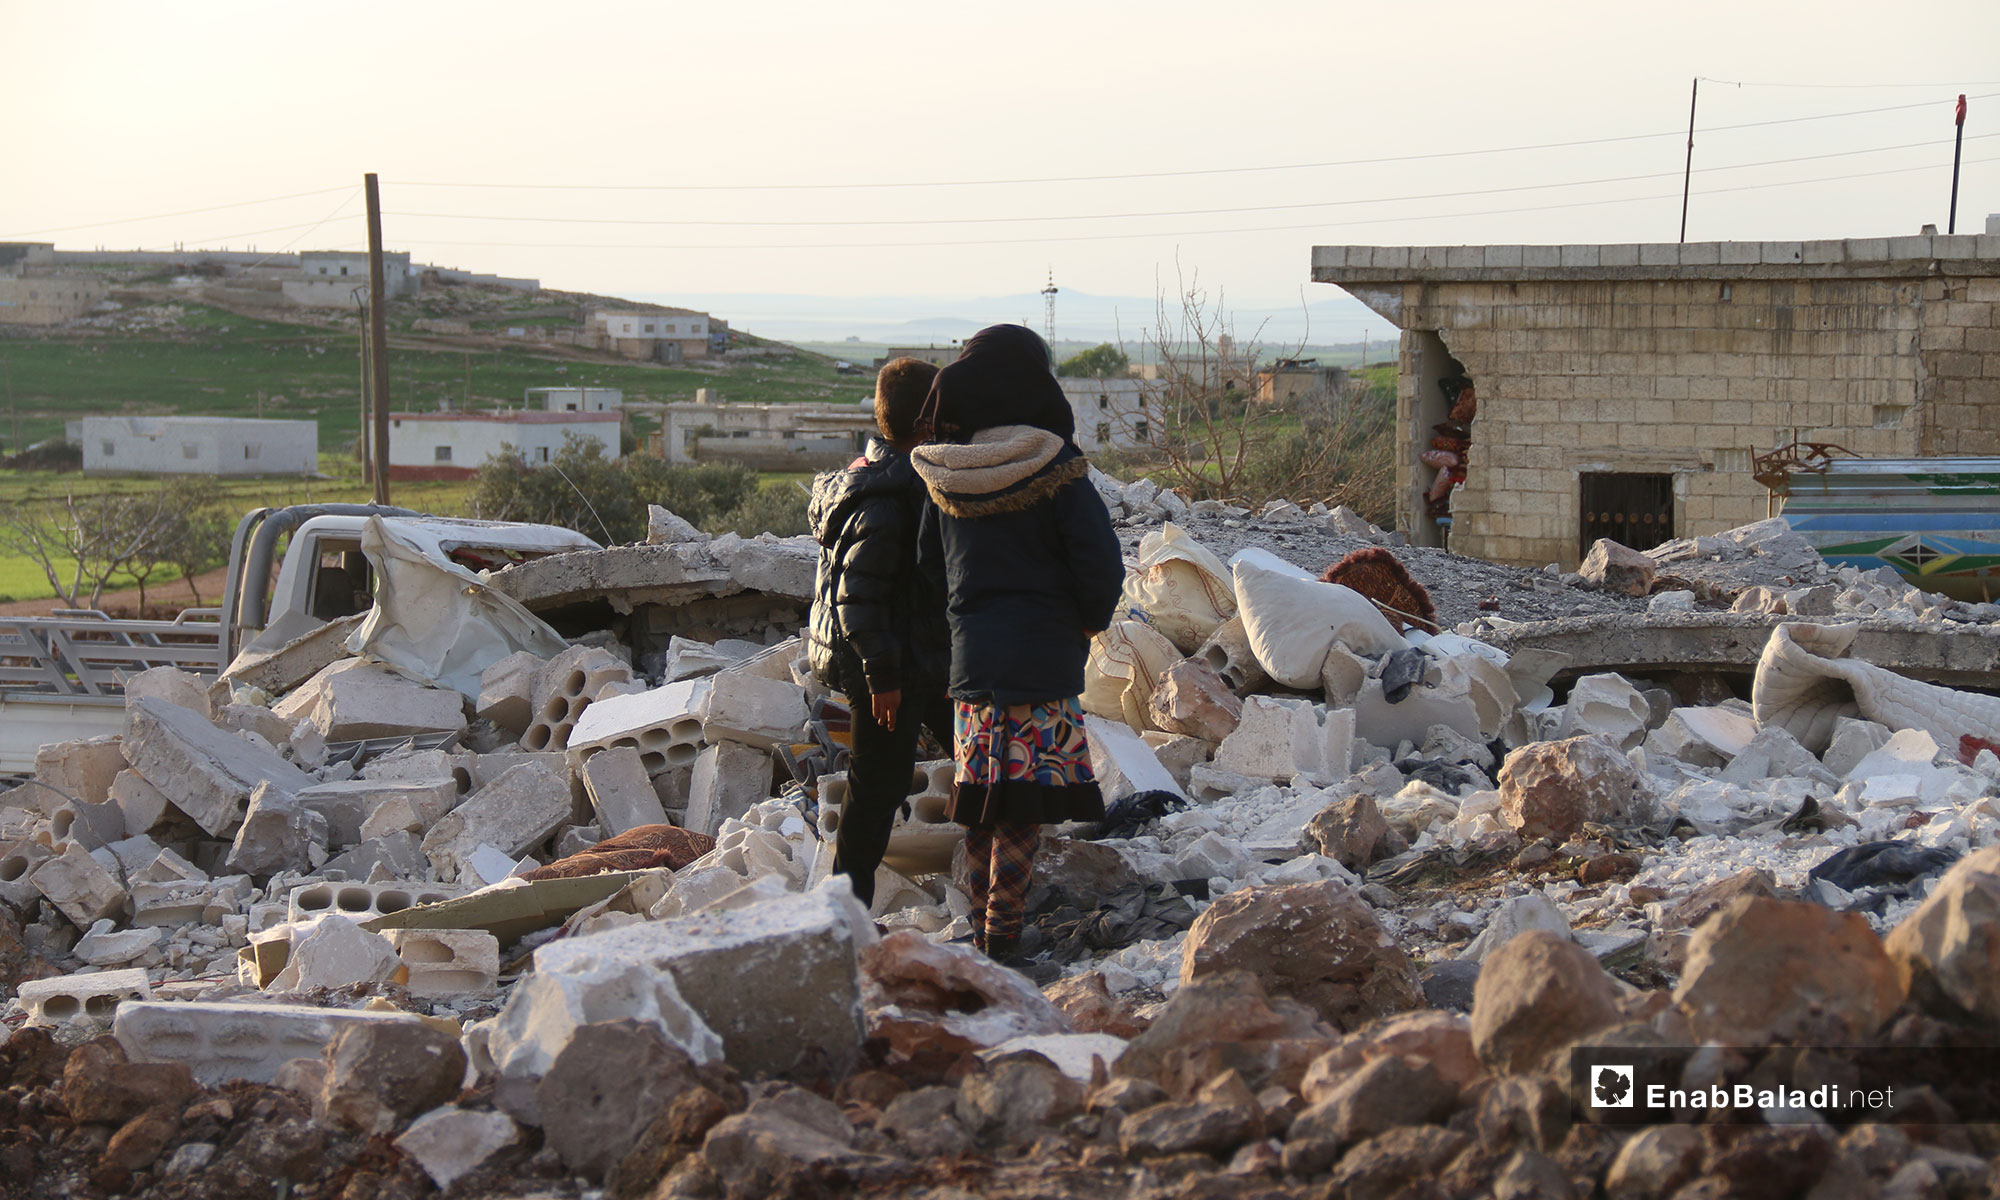 Two children looking at the rubble of houses after the Russian aircraft shelling of the town of Faqie, southern Idlib - March 21, 2019 (Enab Baladi)